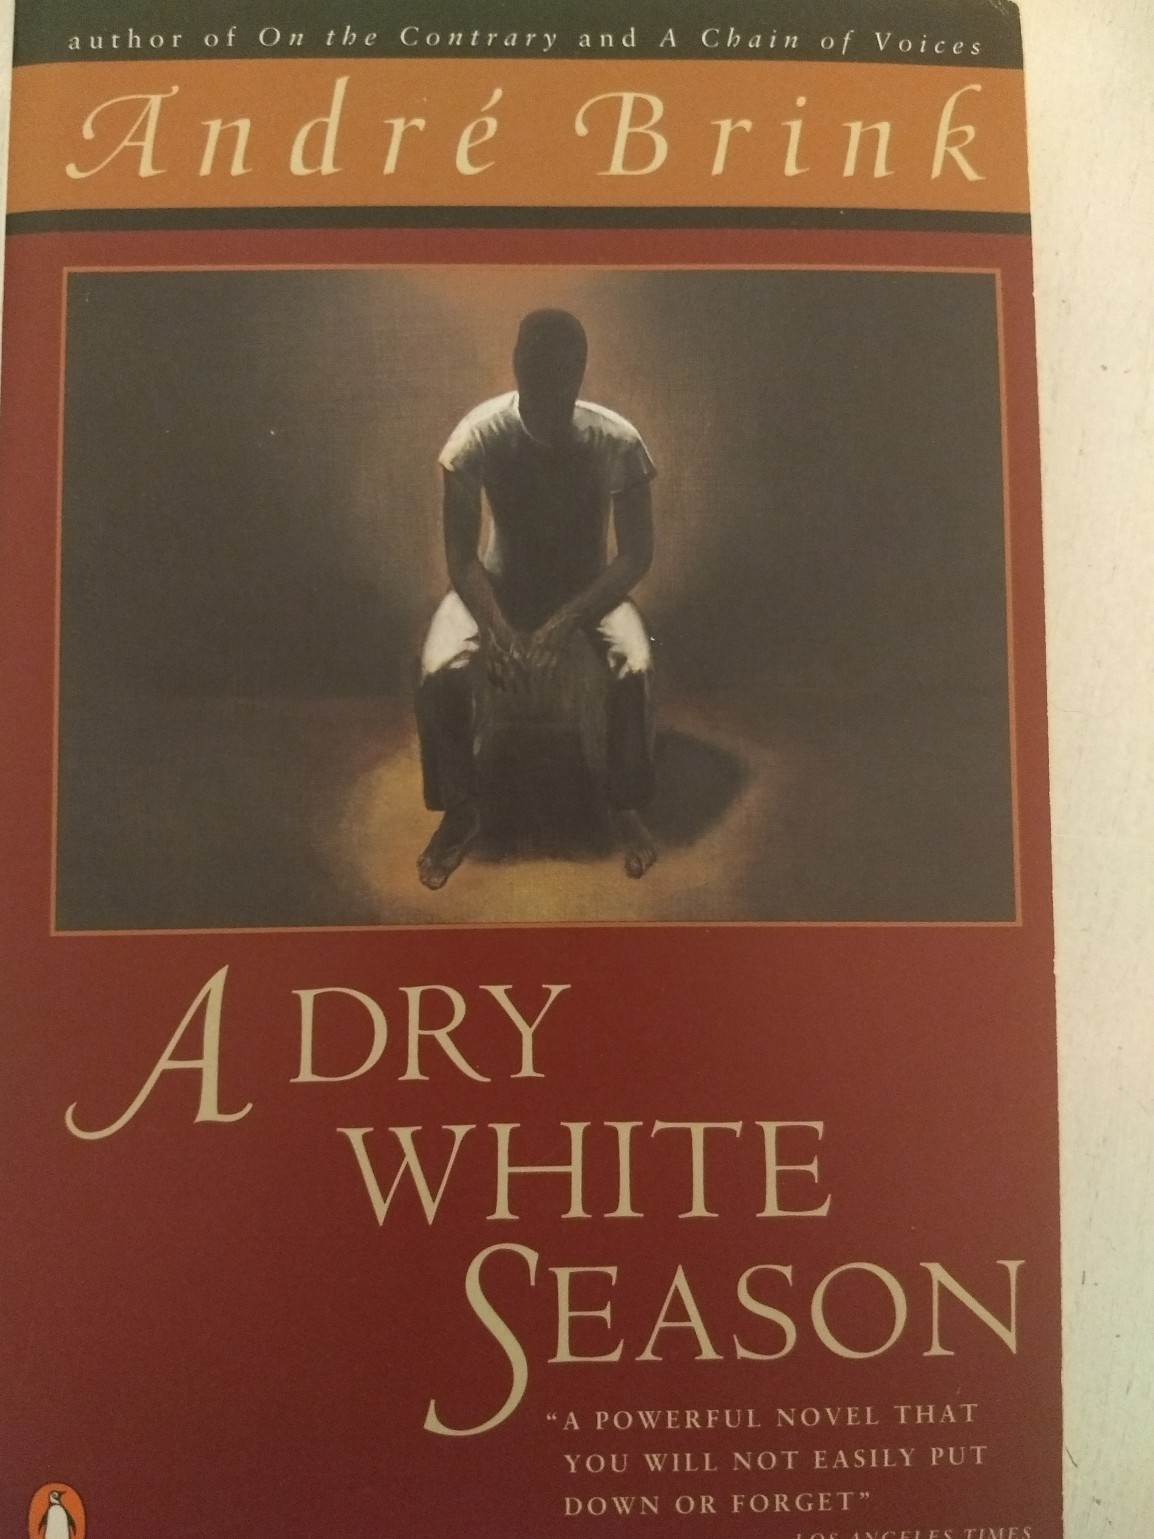 Review A DRY WHITE SEASON